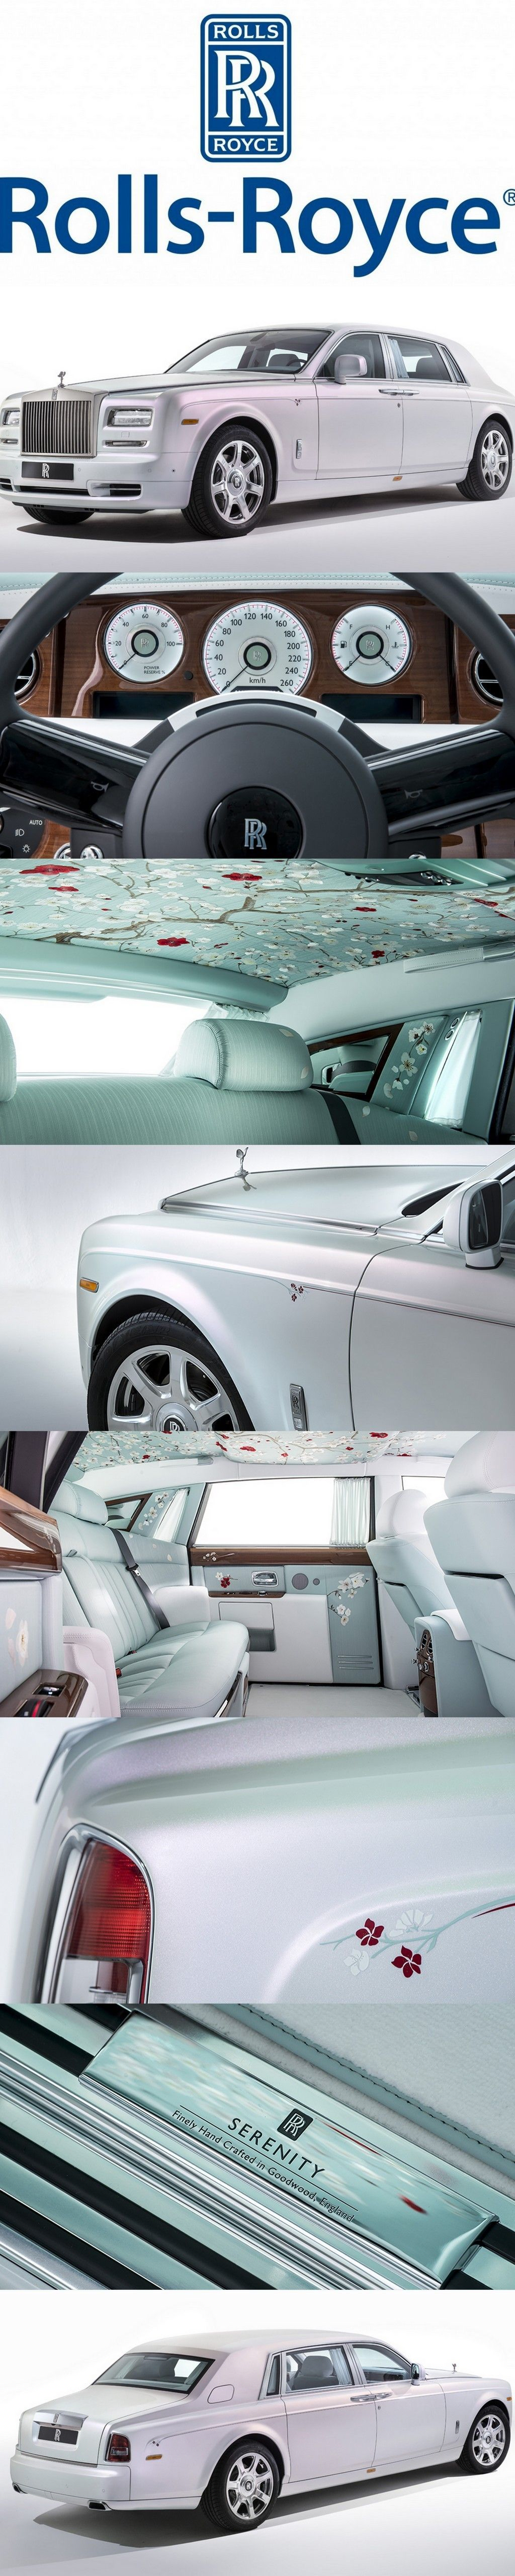 Phantom Serenity Bespoke Rolls Royce Phantom Serenity Concept With Customization